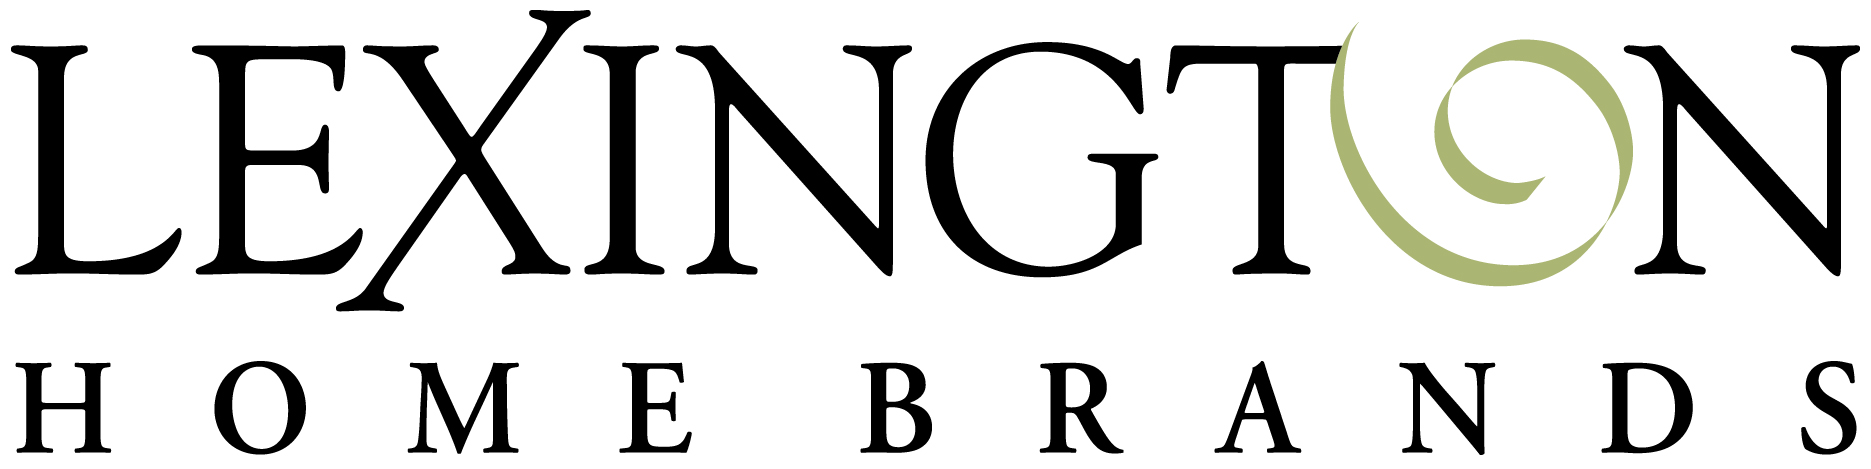 7. lexington logo